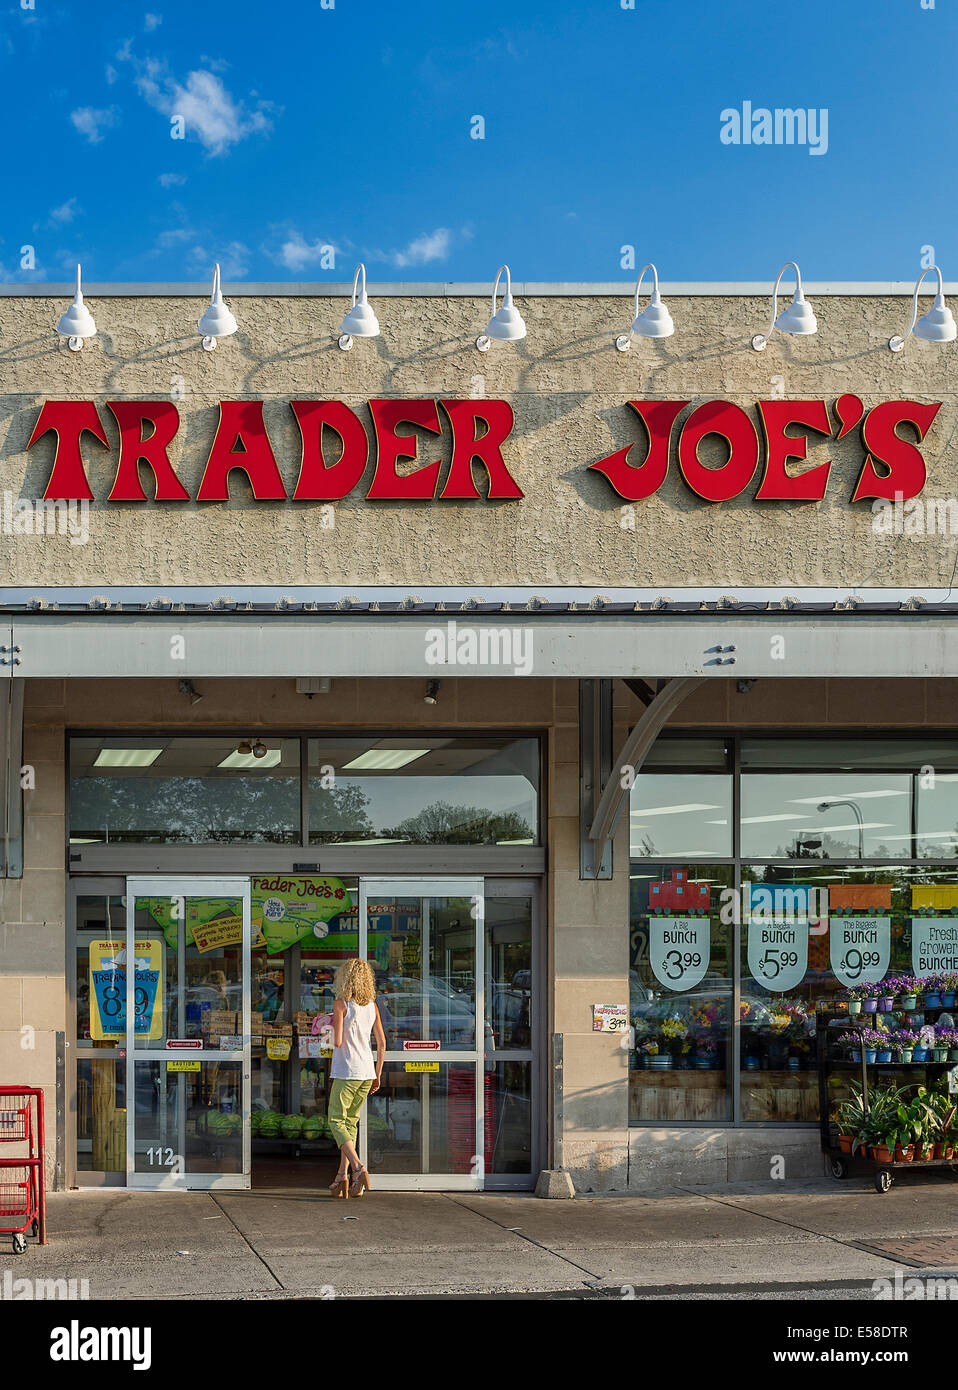 Exterior of Trader Joe's specialty food store, Ardmore, Pennsylvania, USA - Stock Image